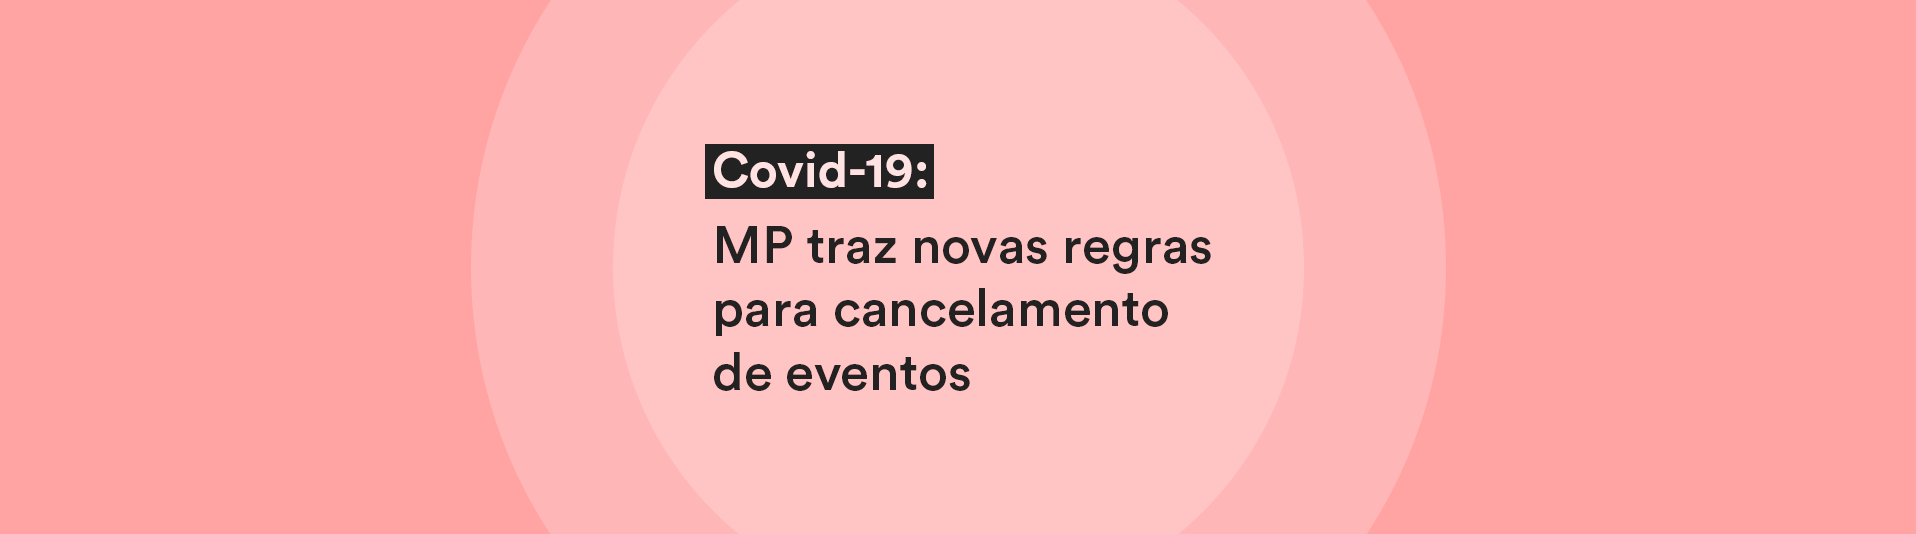 Covid-19: MP traz novas regras para cancelamento de eventos